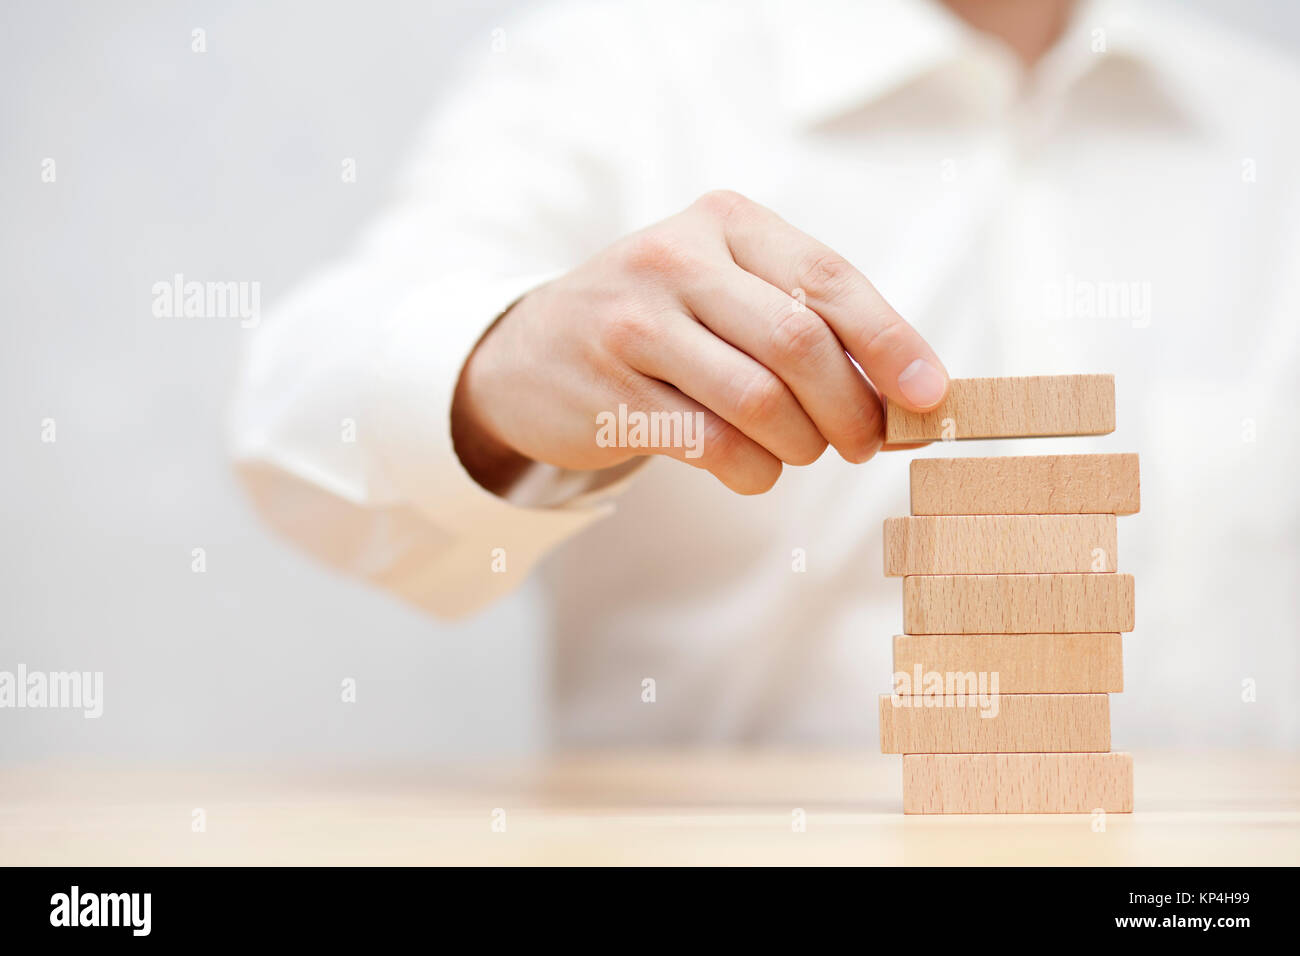 Man's hand stacking wooden blocks. Business development concept. - Stock Image